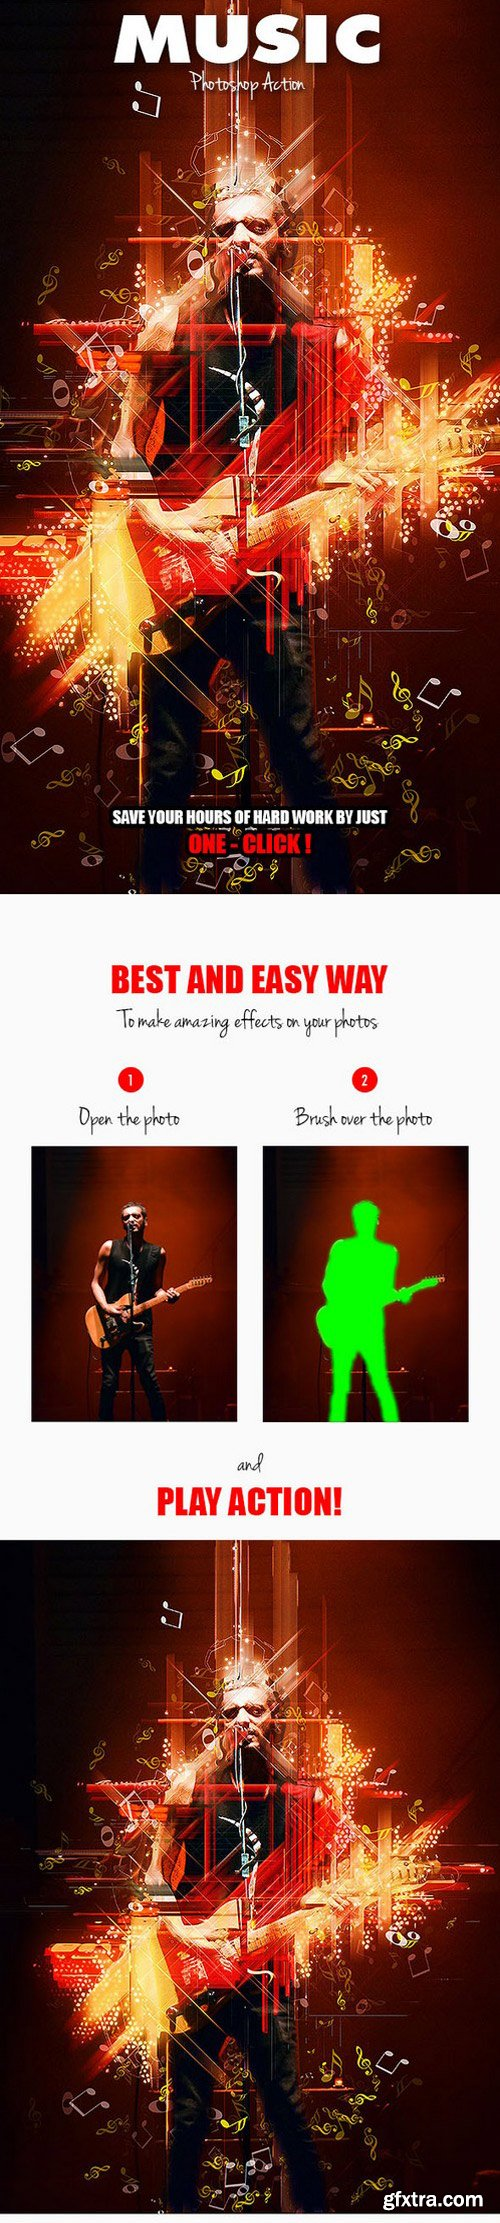 Graphicriver - Music Photoshop Action 17296287